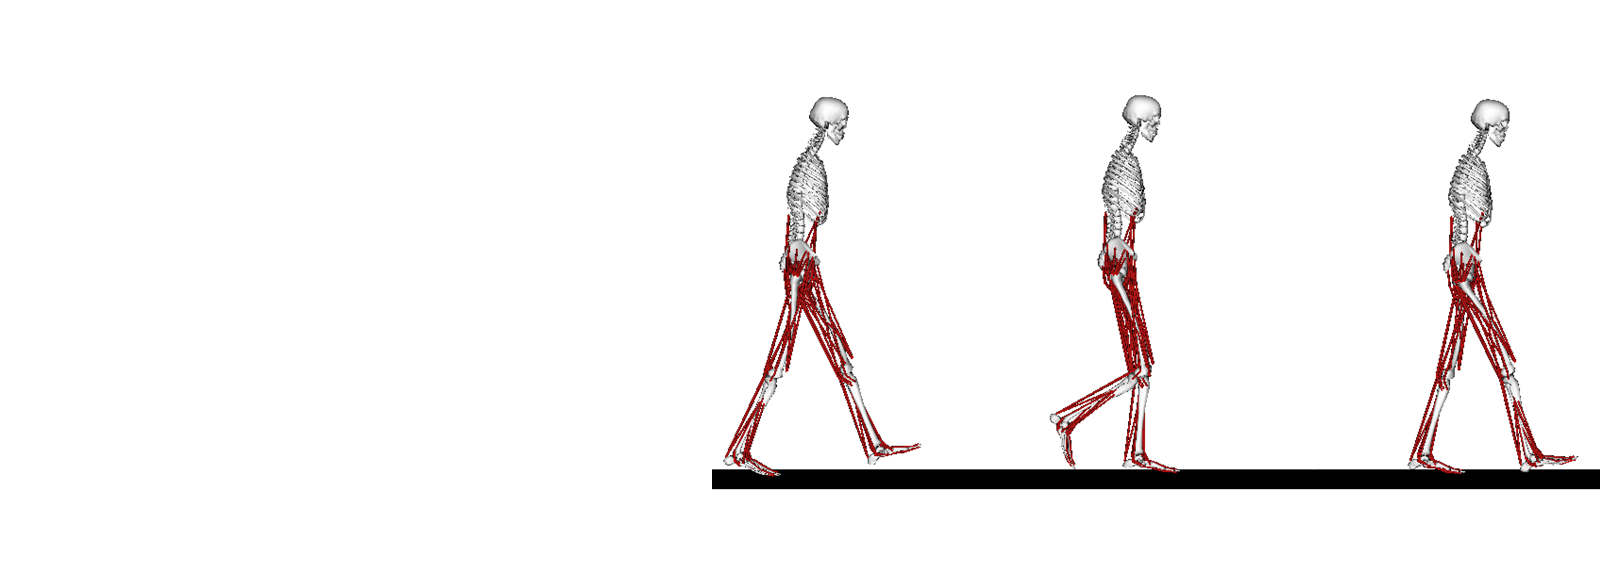 Simulation models of humans walking